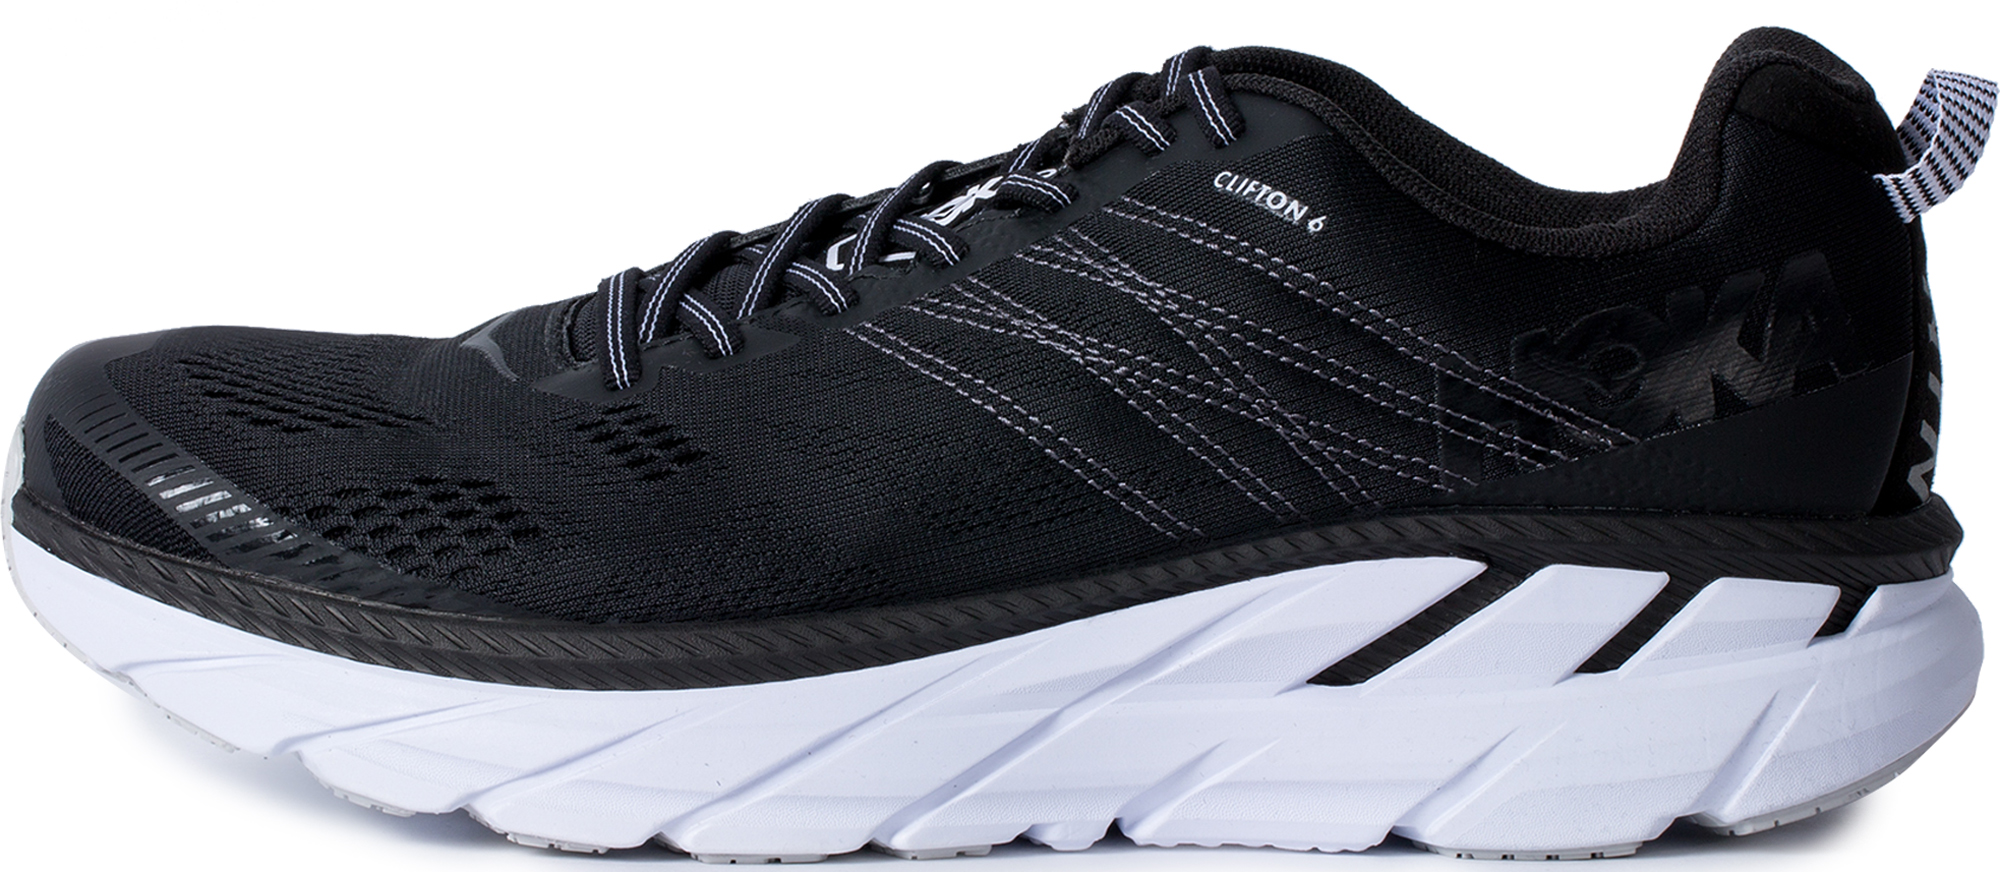 HOKA ONE ONE Кроссовки мужские HOKA ONE ONE Clifton 6, размер 41 hoka one one women s w conquest running shoe